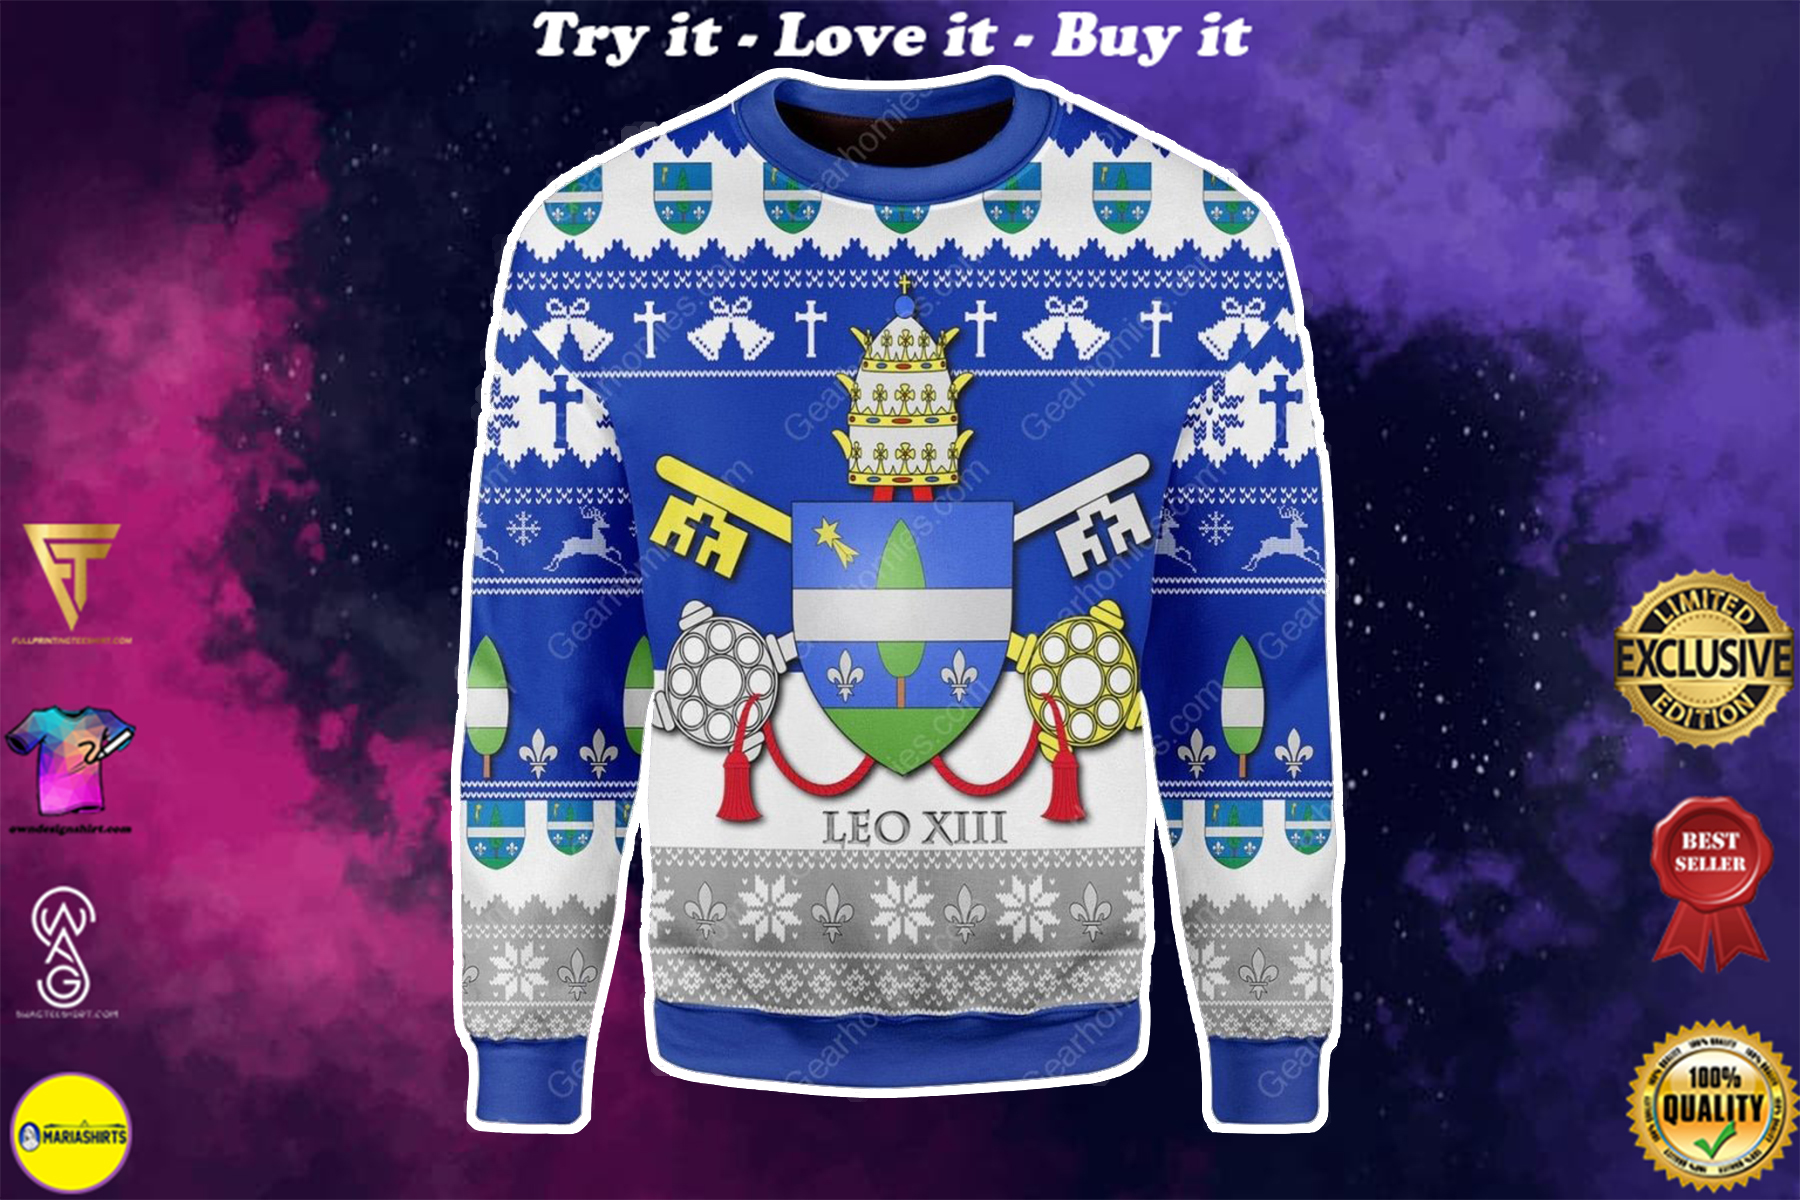 [special edition] coat of arms of pope leo xiii all over printed ugly christmas sweater - maria